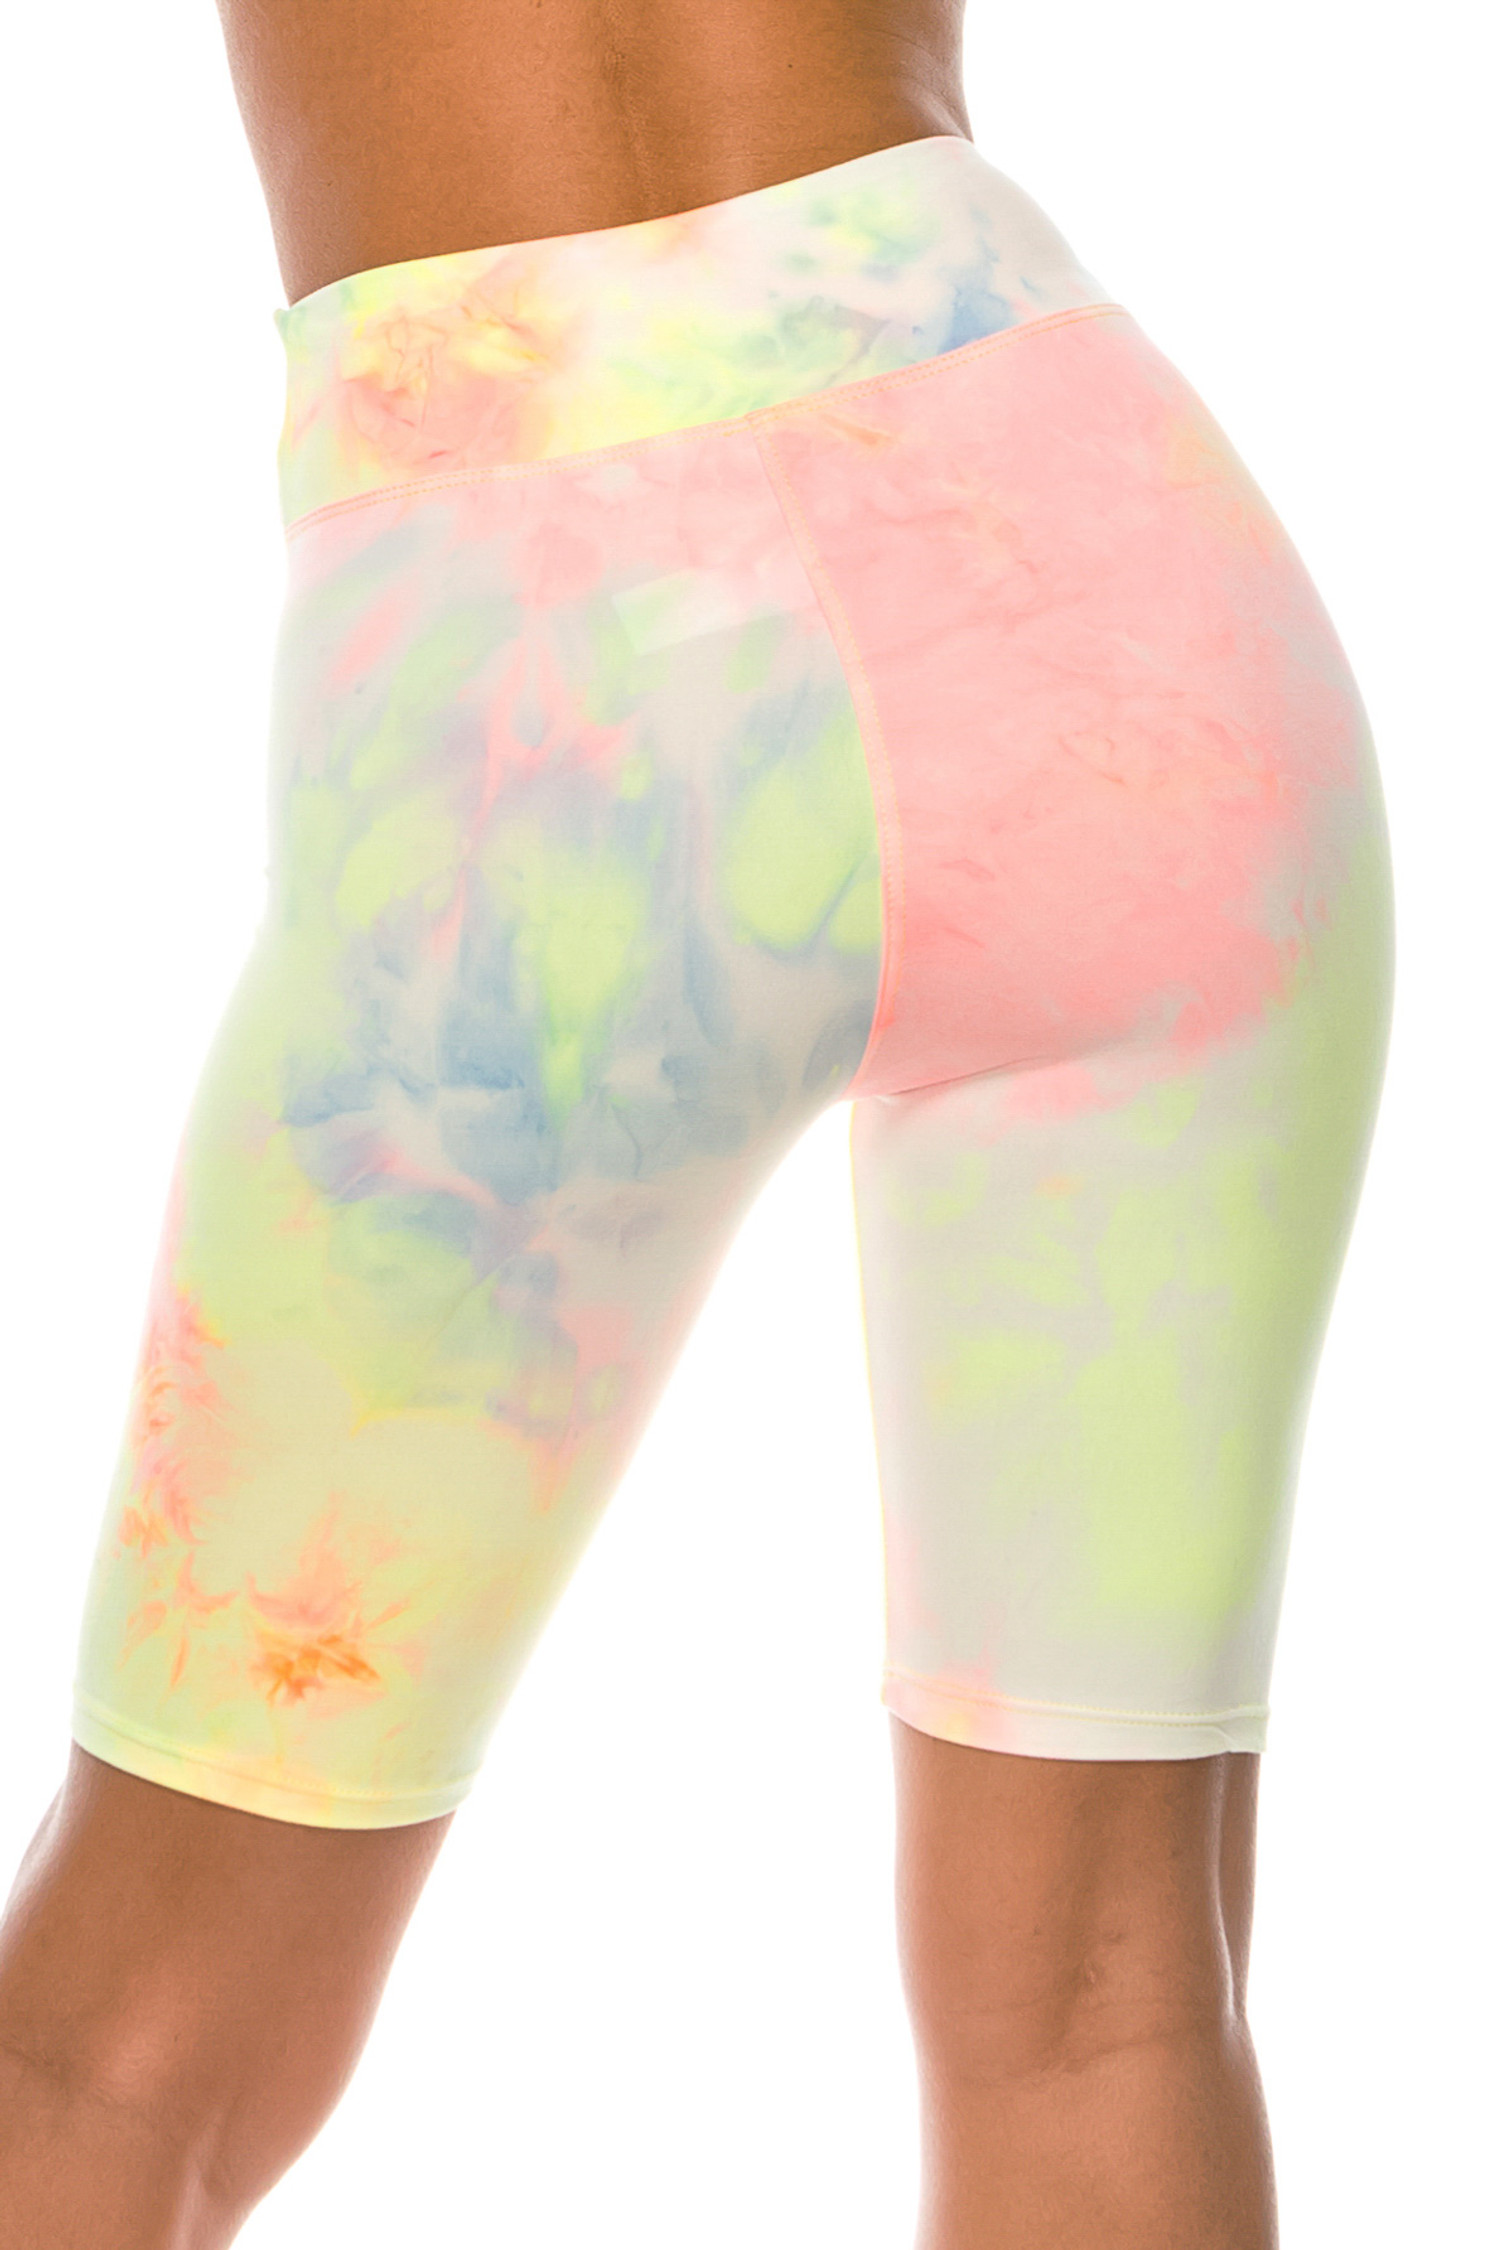 Buttery Soft Pastel Tie Dye High Waisted Plus Size Biker Shorts - 3 Inch Waist